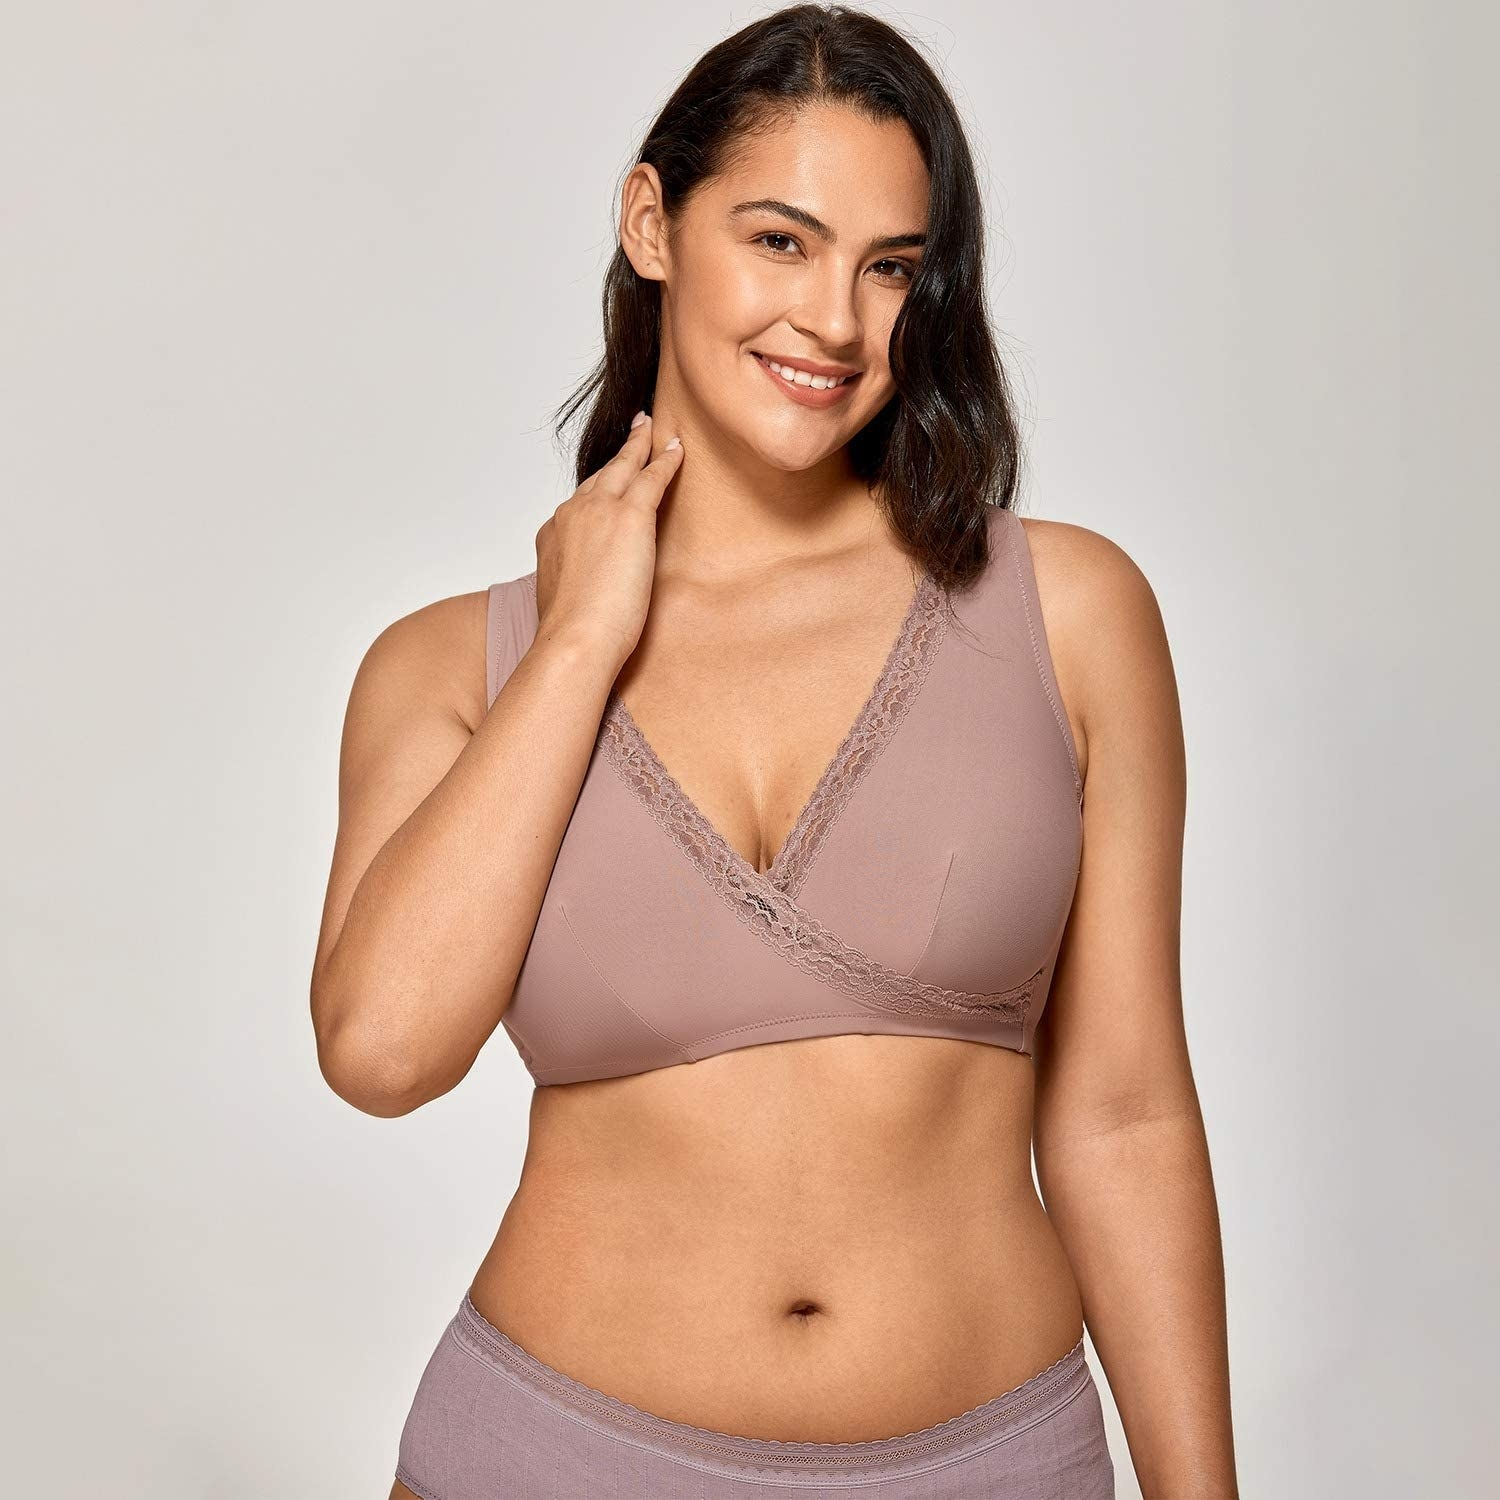 model wearing bralette in light purple